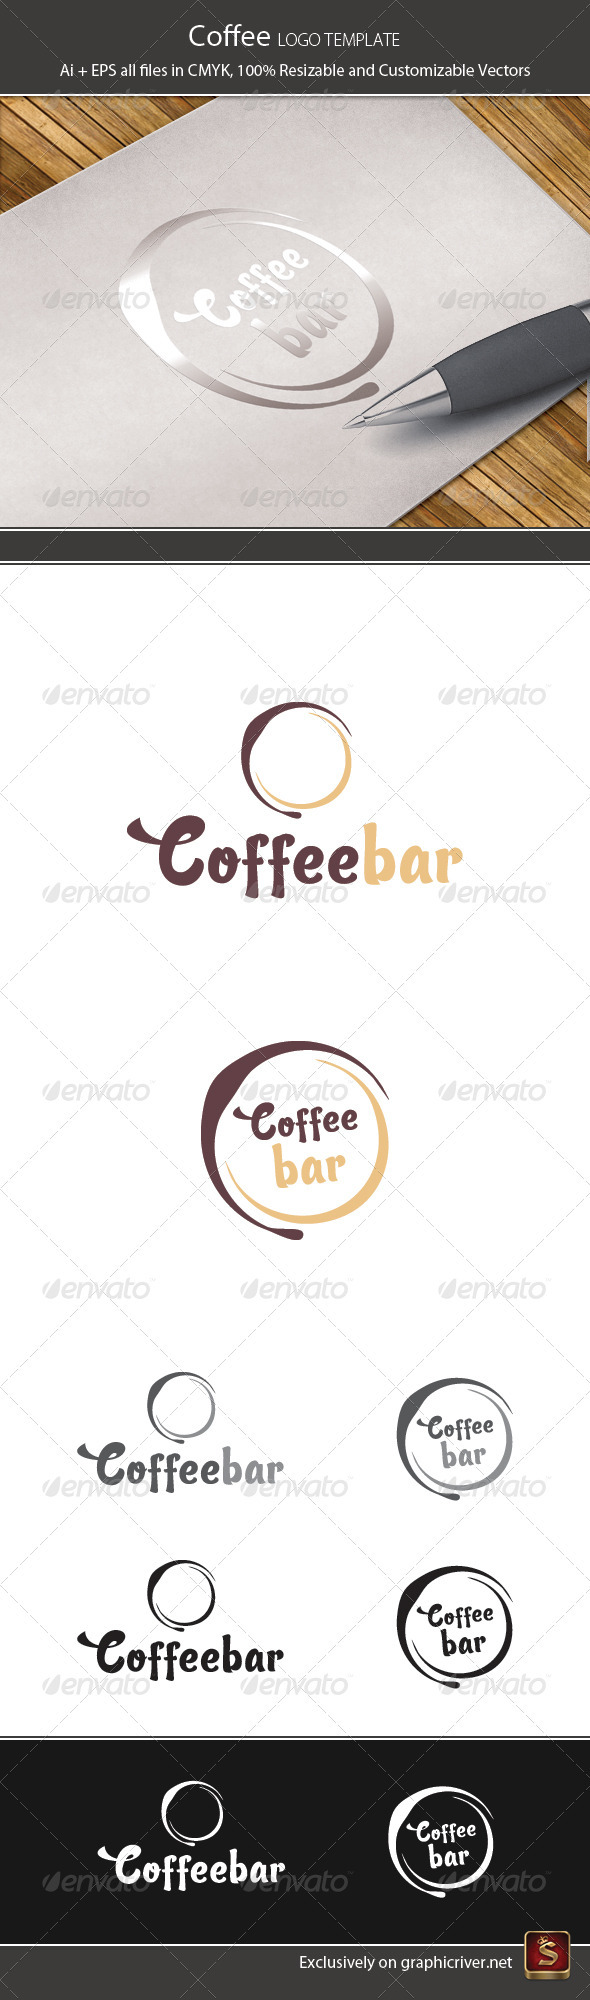 Coffee Logo Template - Vector Abstract